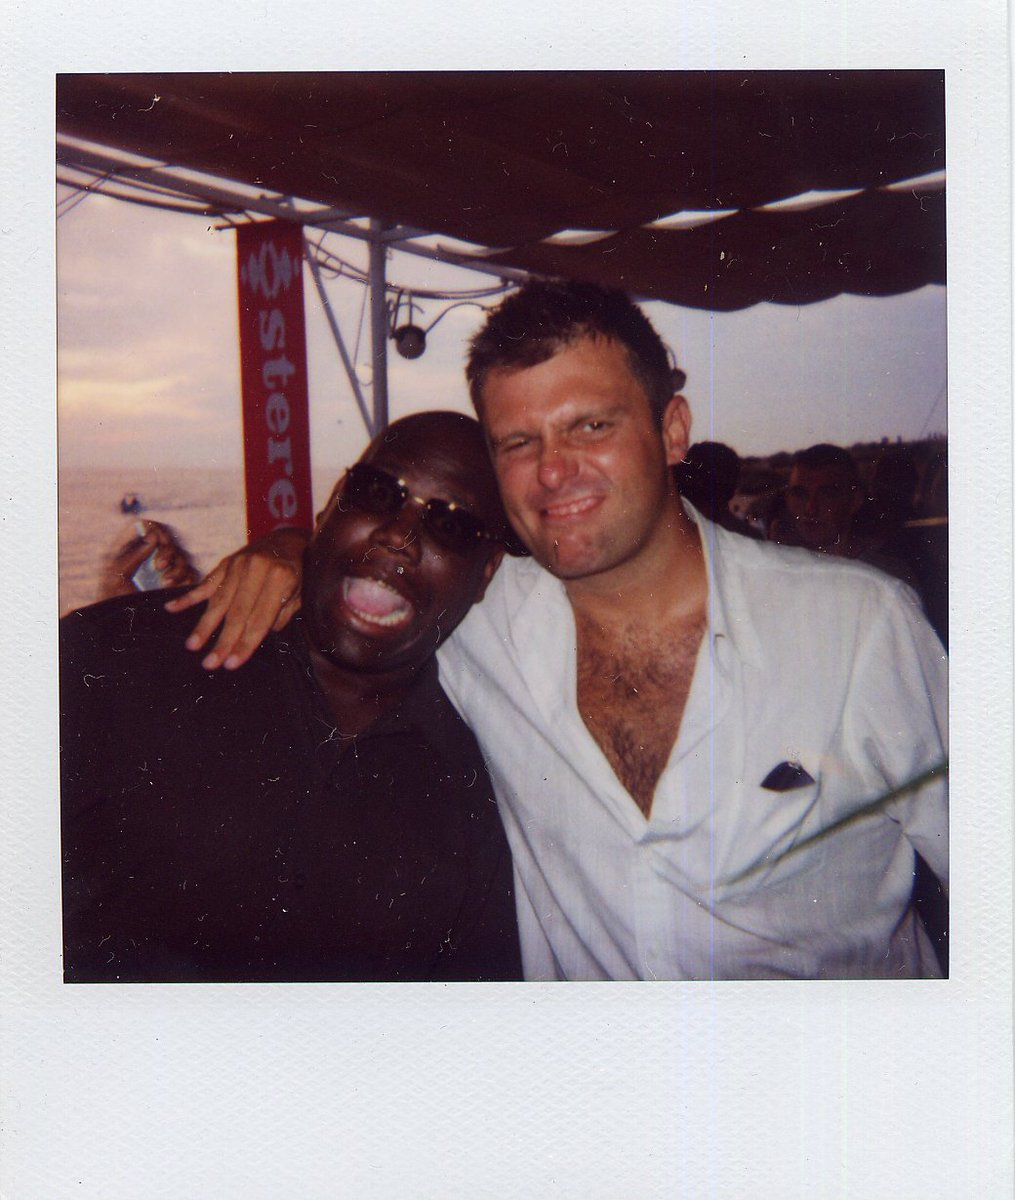 Sometimes all we need is some old memories to bring back a smile😁Here's @Carl_Cox & @darrenemerson clowning around with us back in the day😜😂👌 #TBT #mambomemories https://t.co/70awlS0GV1